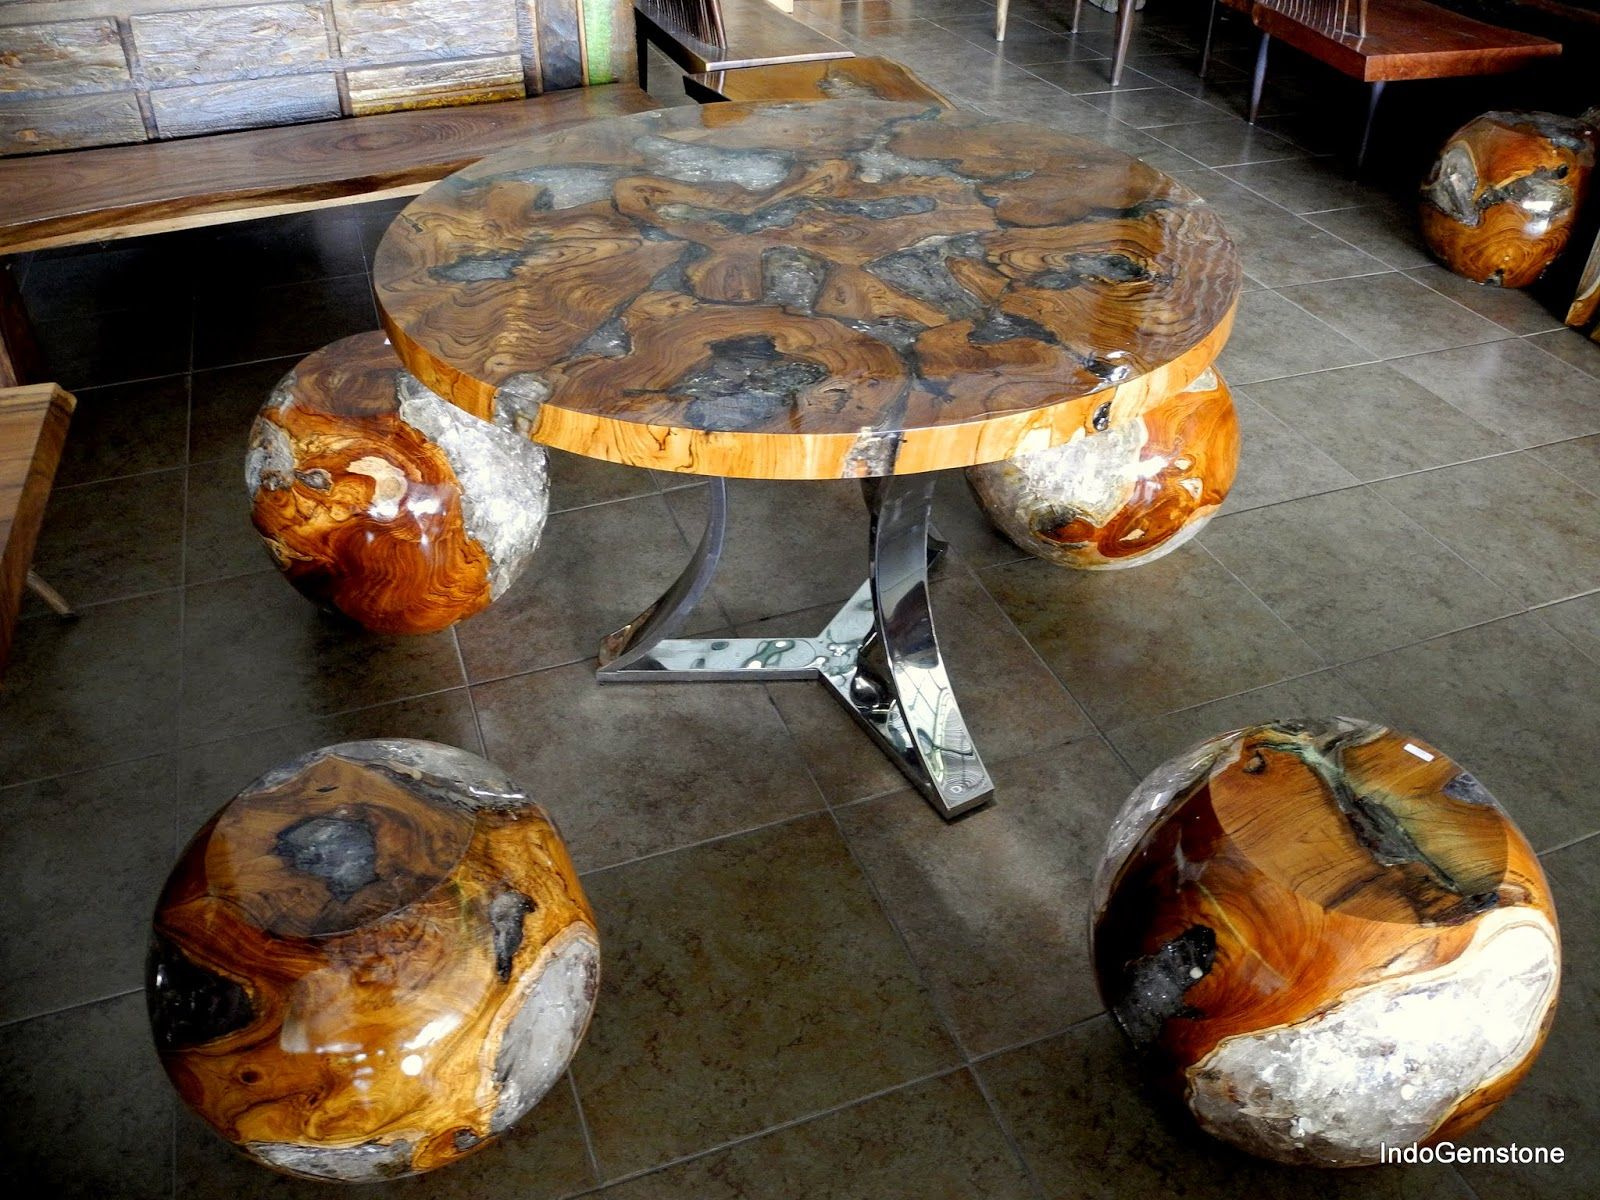 Epoxy Filled Wood Furniture Resin Table Resin Furniture Epoxy Resin Wood [ 1200 x 1600 Pixel ]